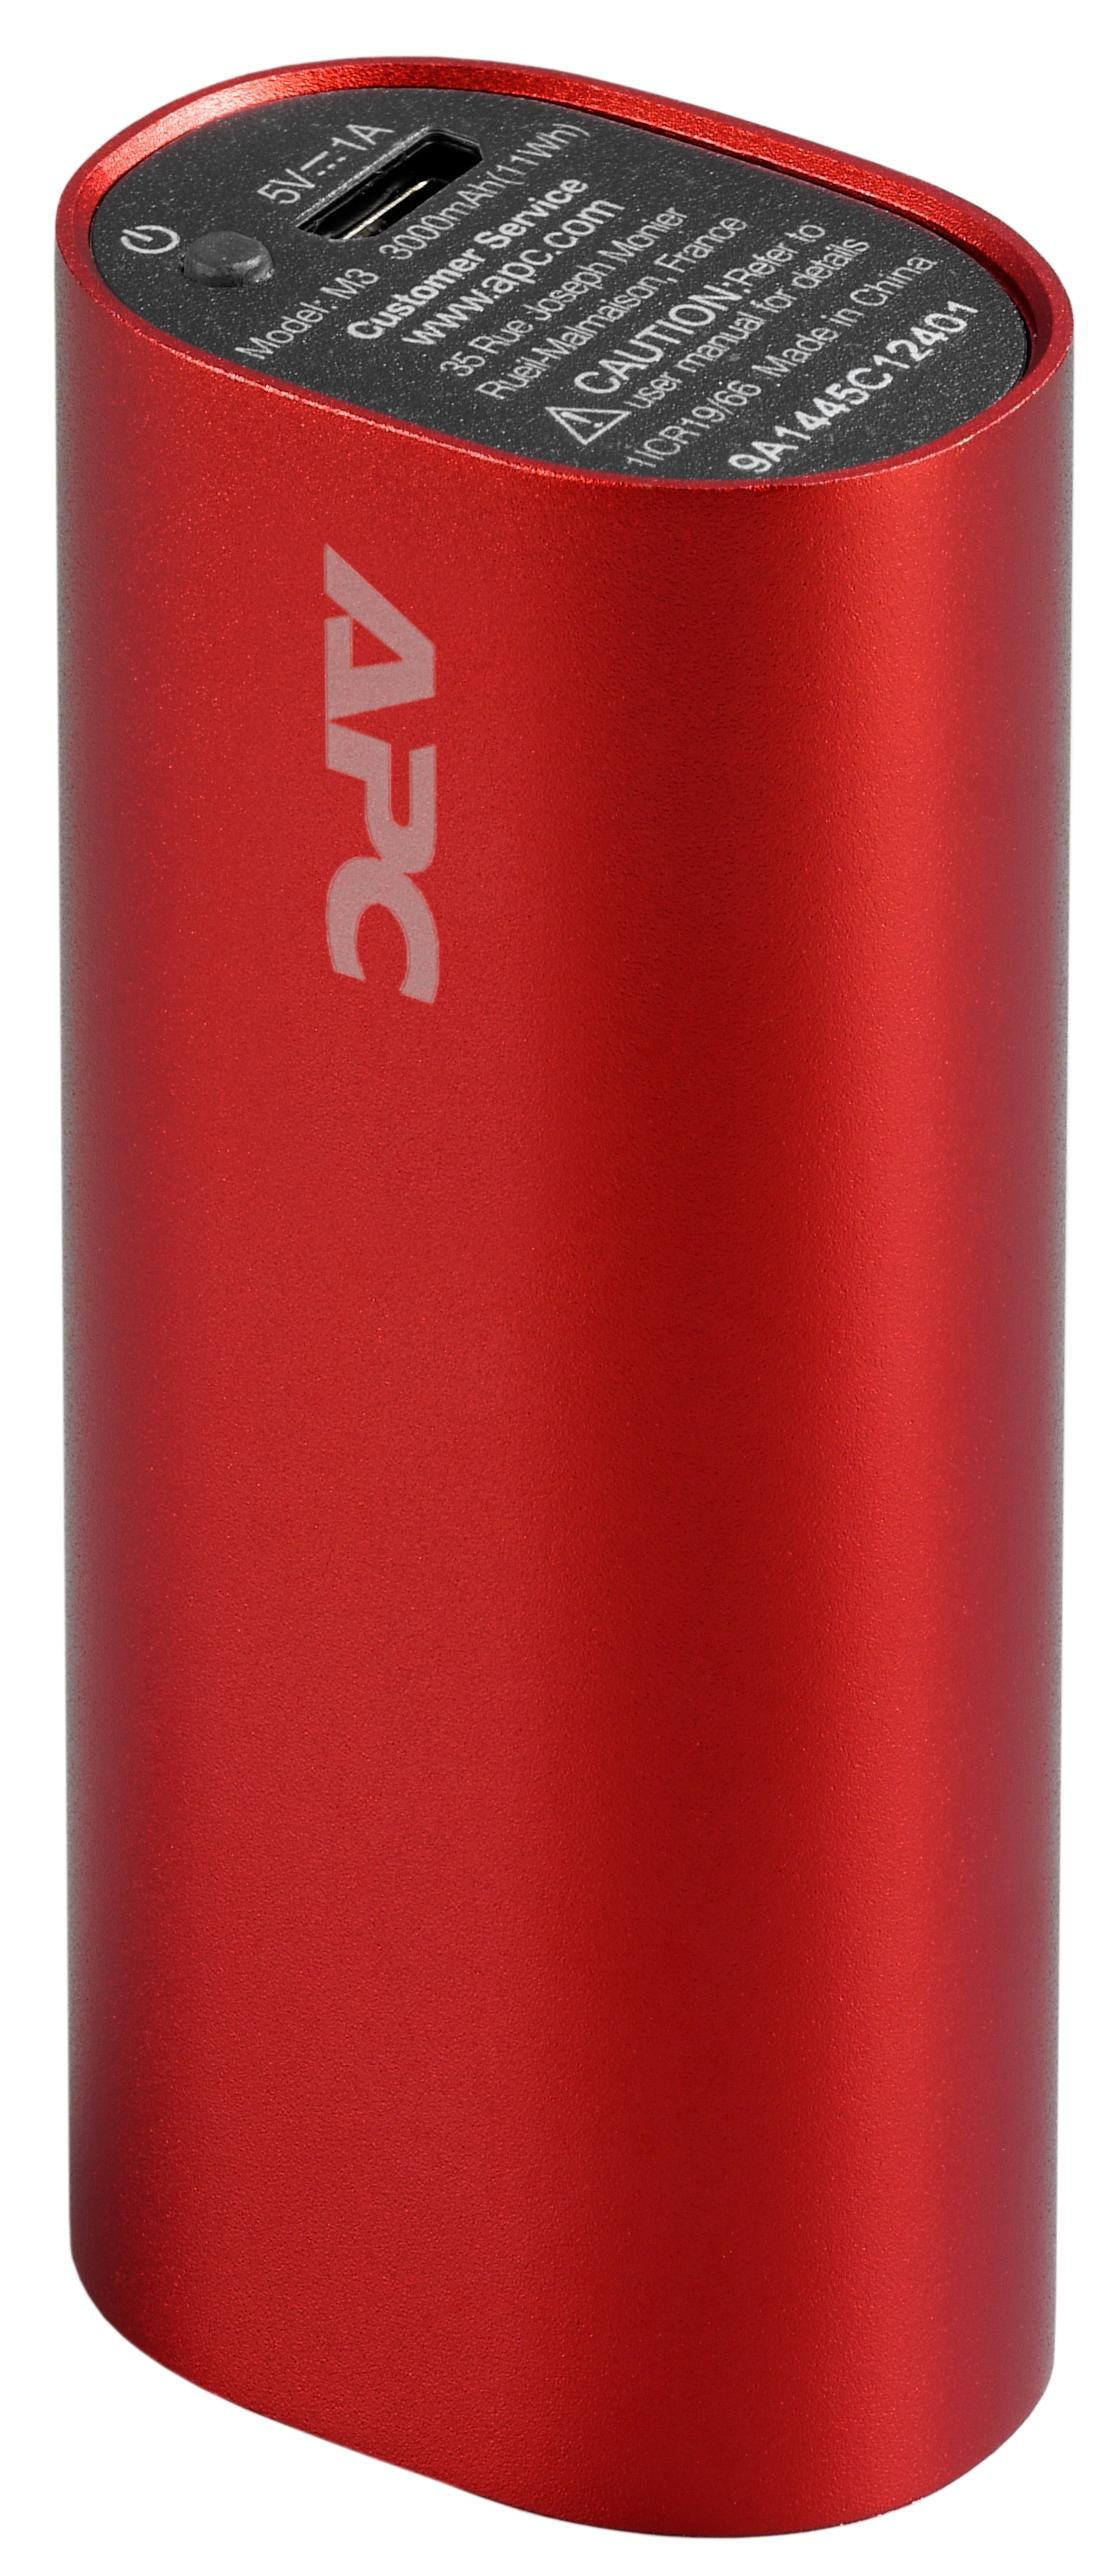 APC Mobile Power Pack, 3000mAh Li-on cylinder, Red (EMEA/CIS/MEA)